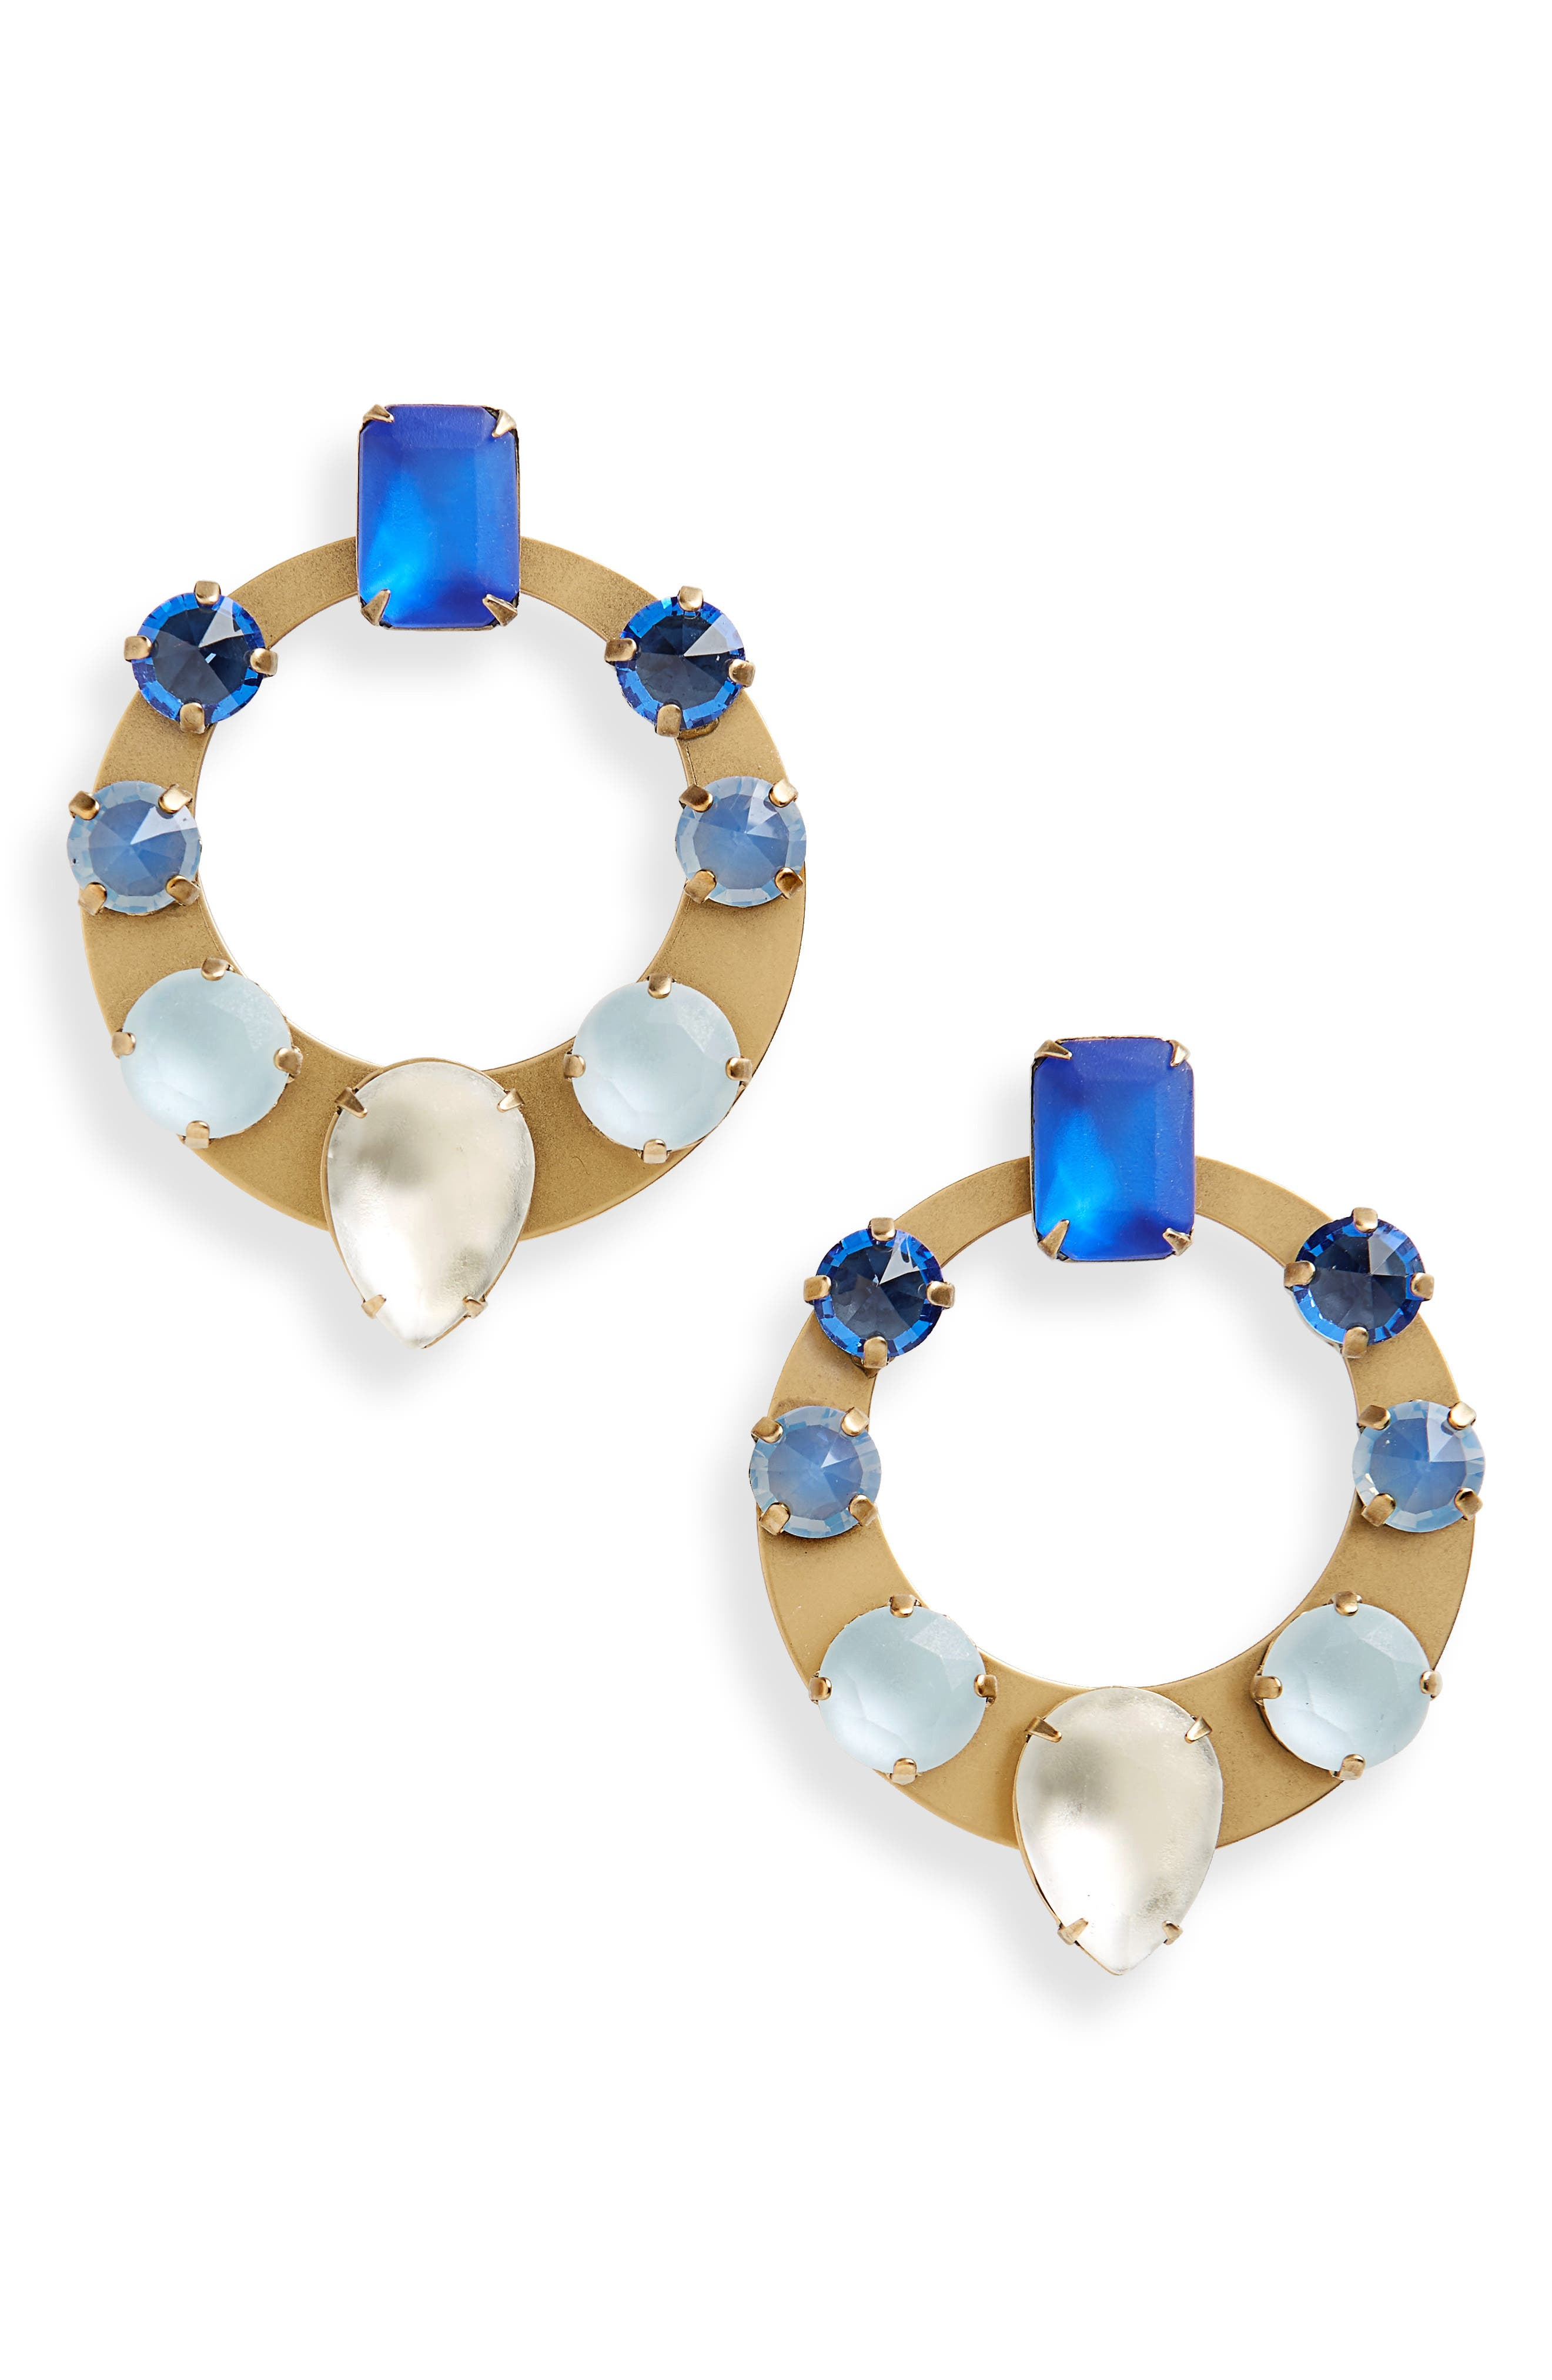 Frontal Hoop Earrings,                             Main thumbnail 1, color,                             BLUE MULTI